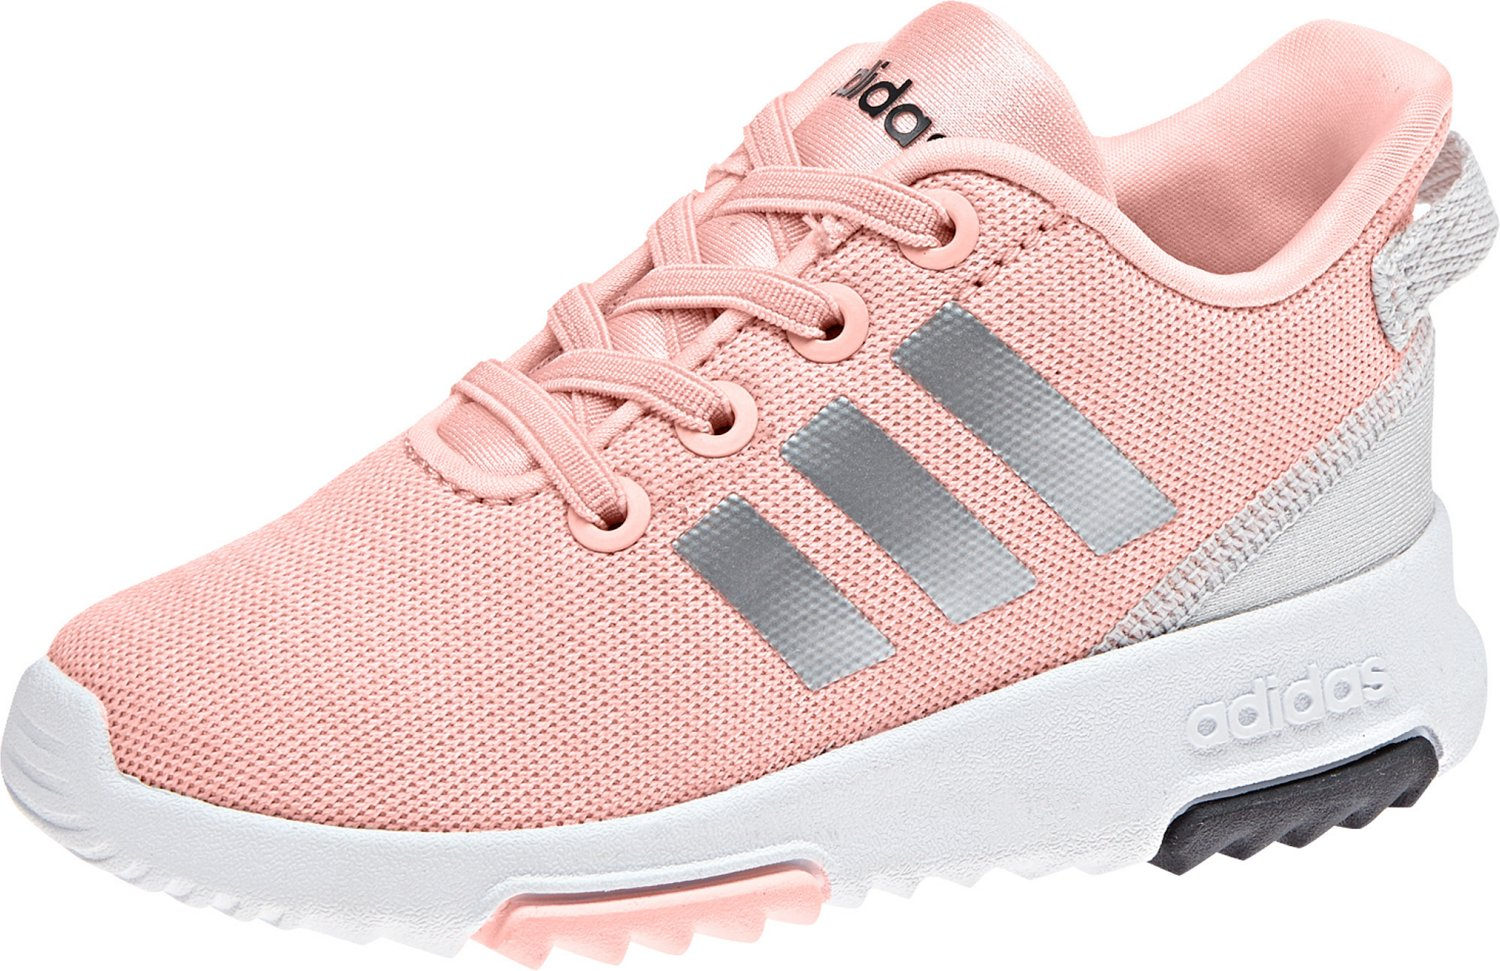 adidas Toddler Girls' Racer TR Running Shoes - view number 2